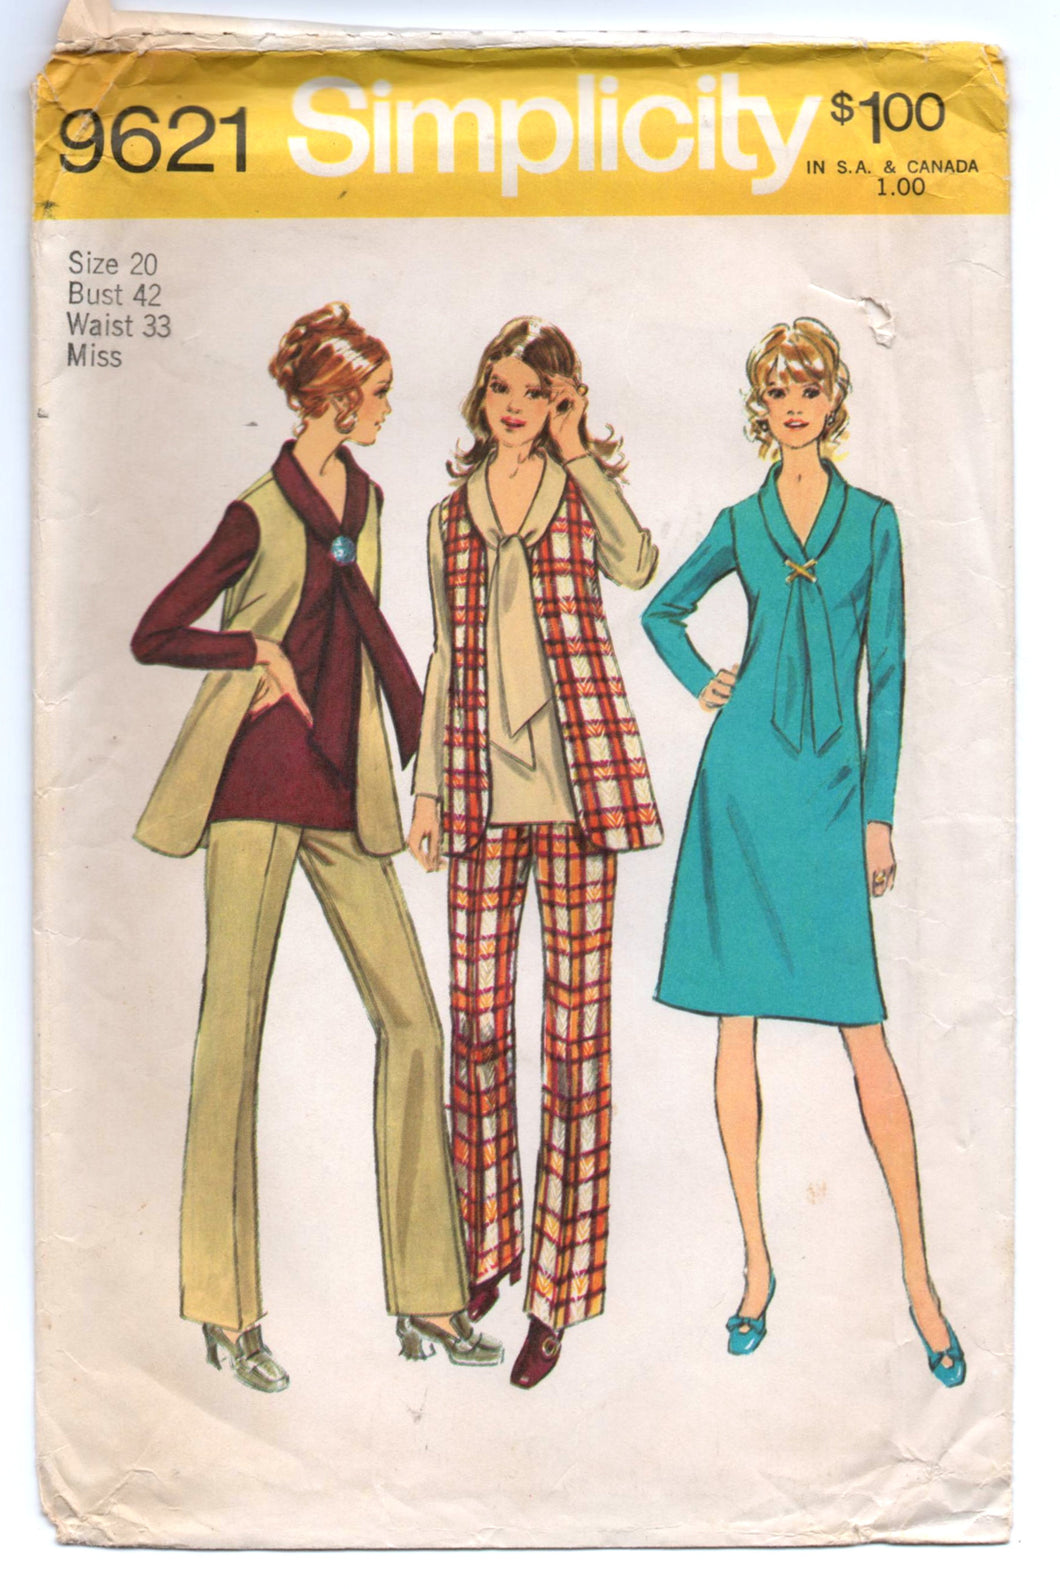 1970's Simplicity One Piece Sheath Dress, Vest, Pants, Blouse with Bow detail Pattern - Bust 42